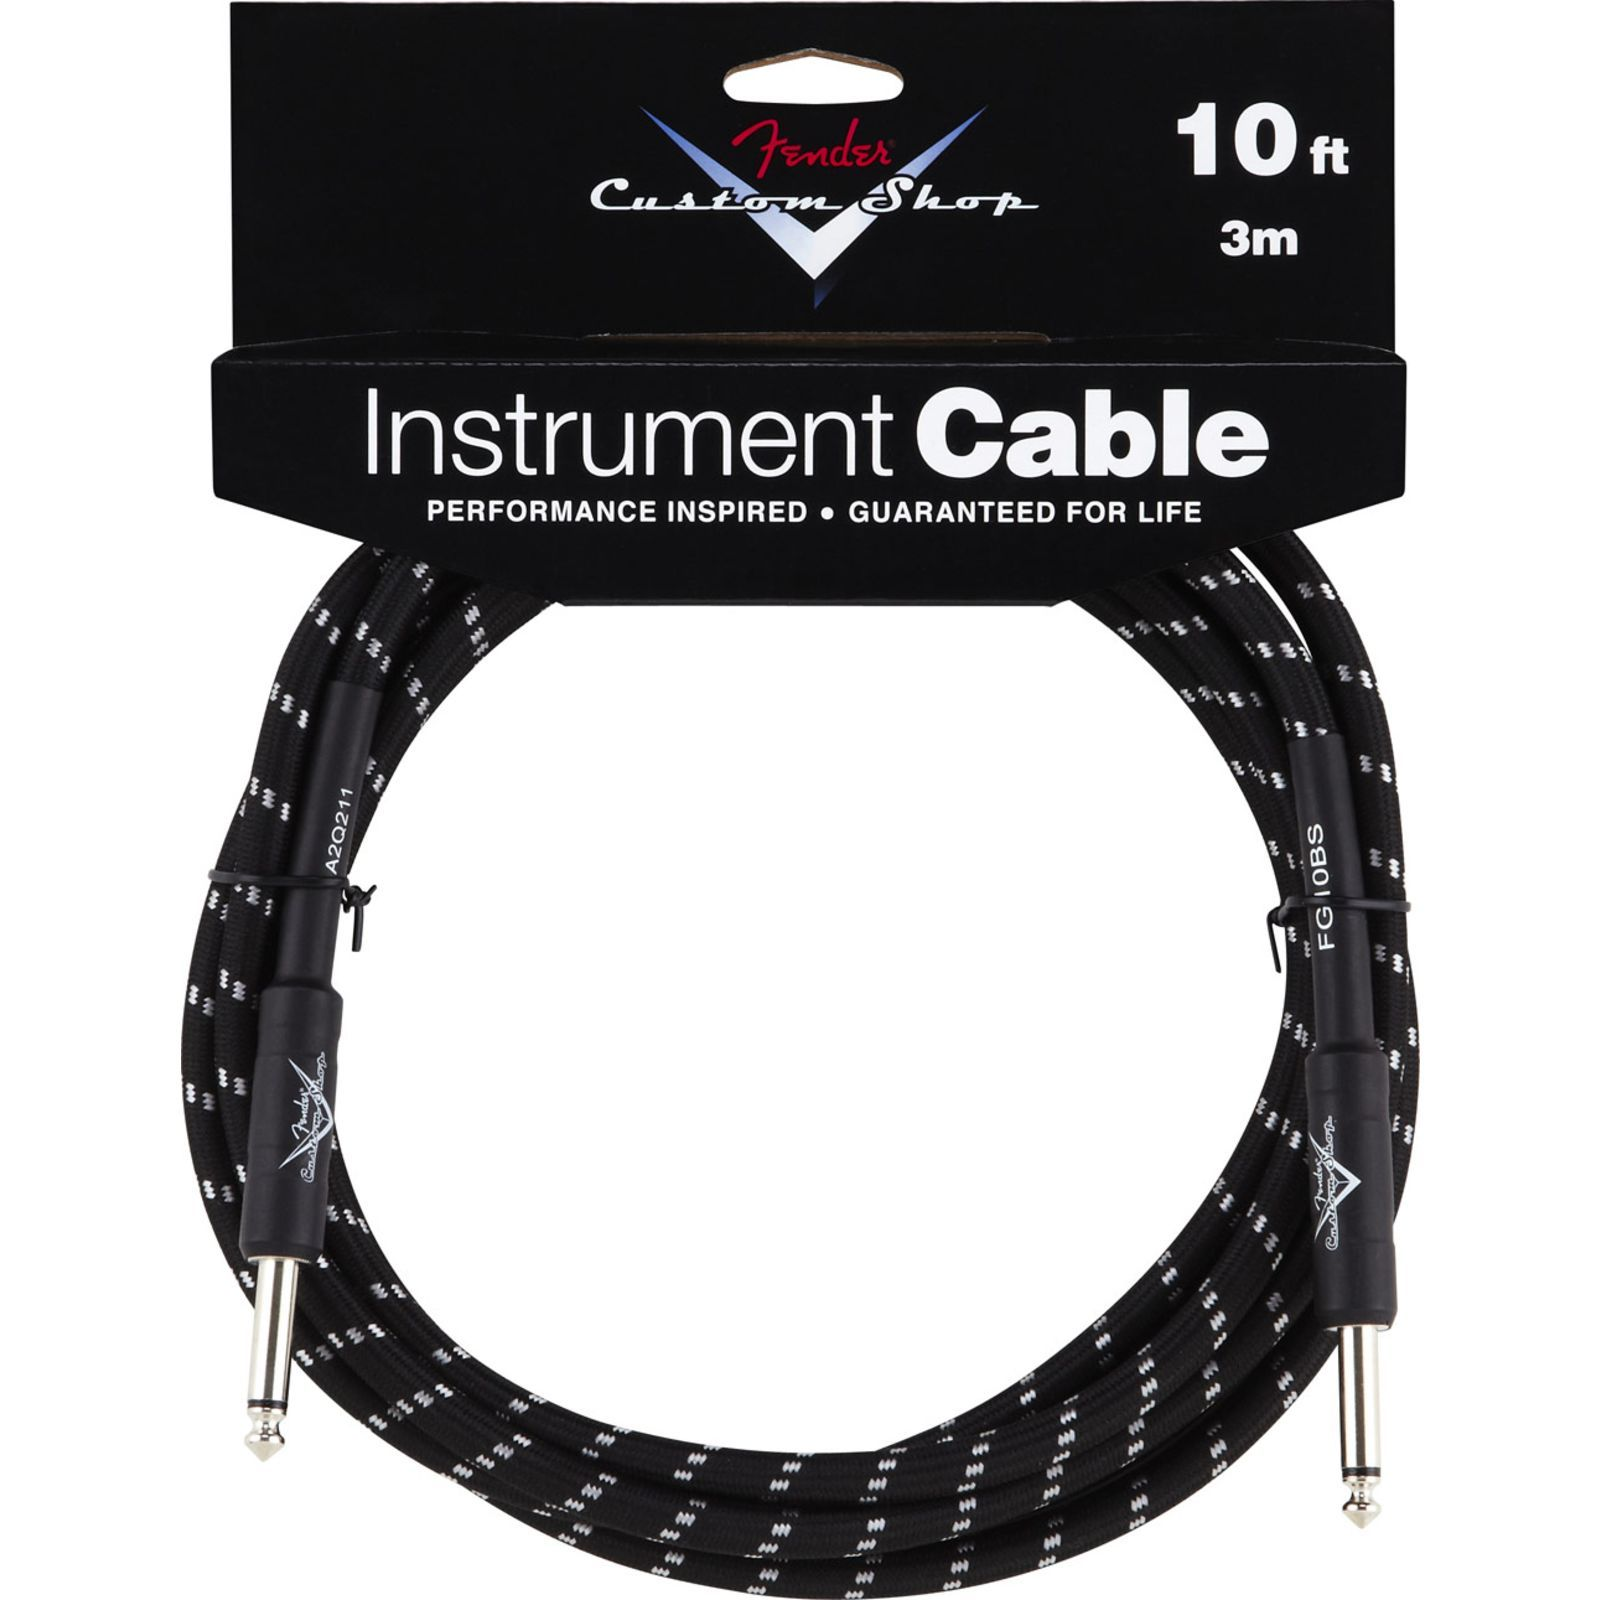 Fender Custom Shop Cable 3m BTW Black Tweed, Kli/Kli Produktbillede